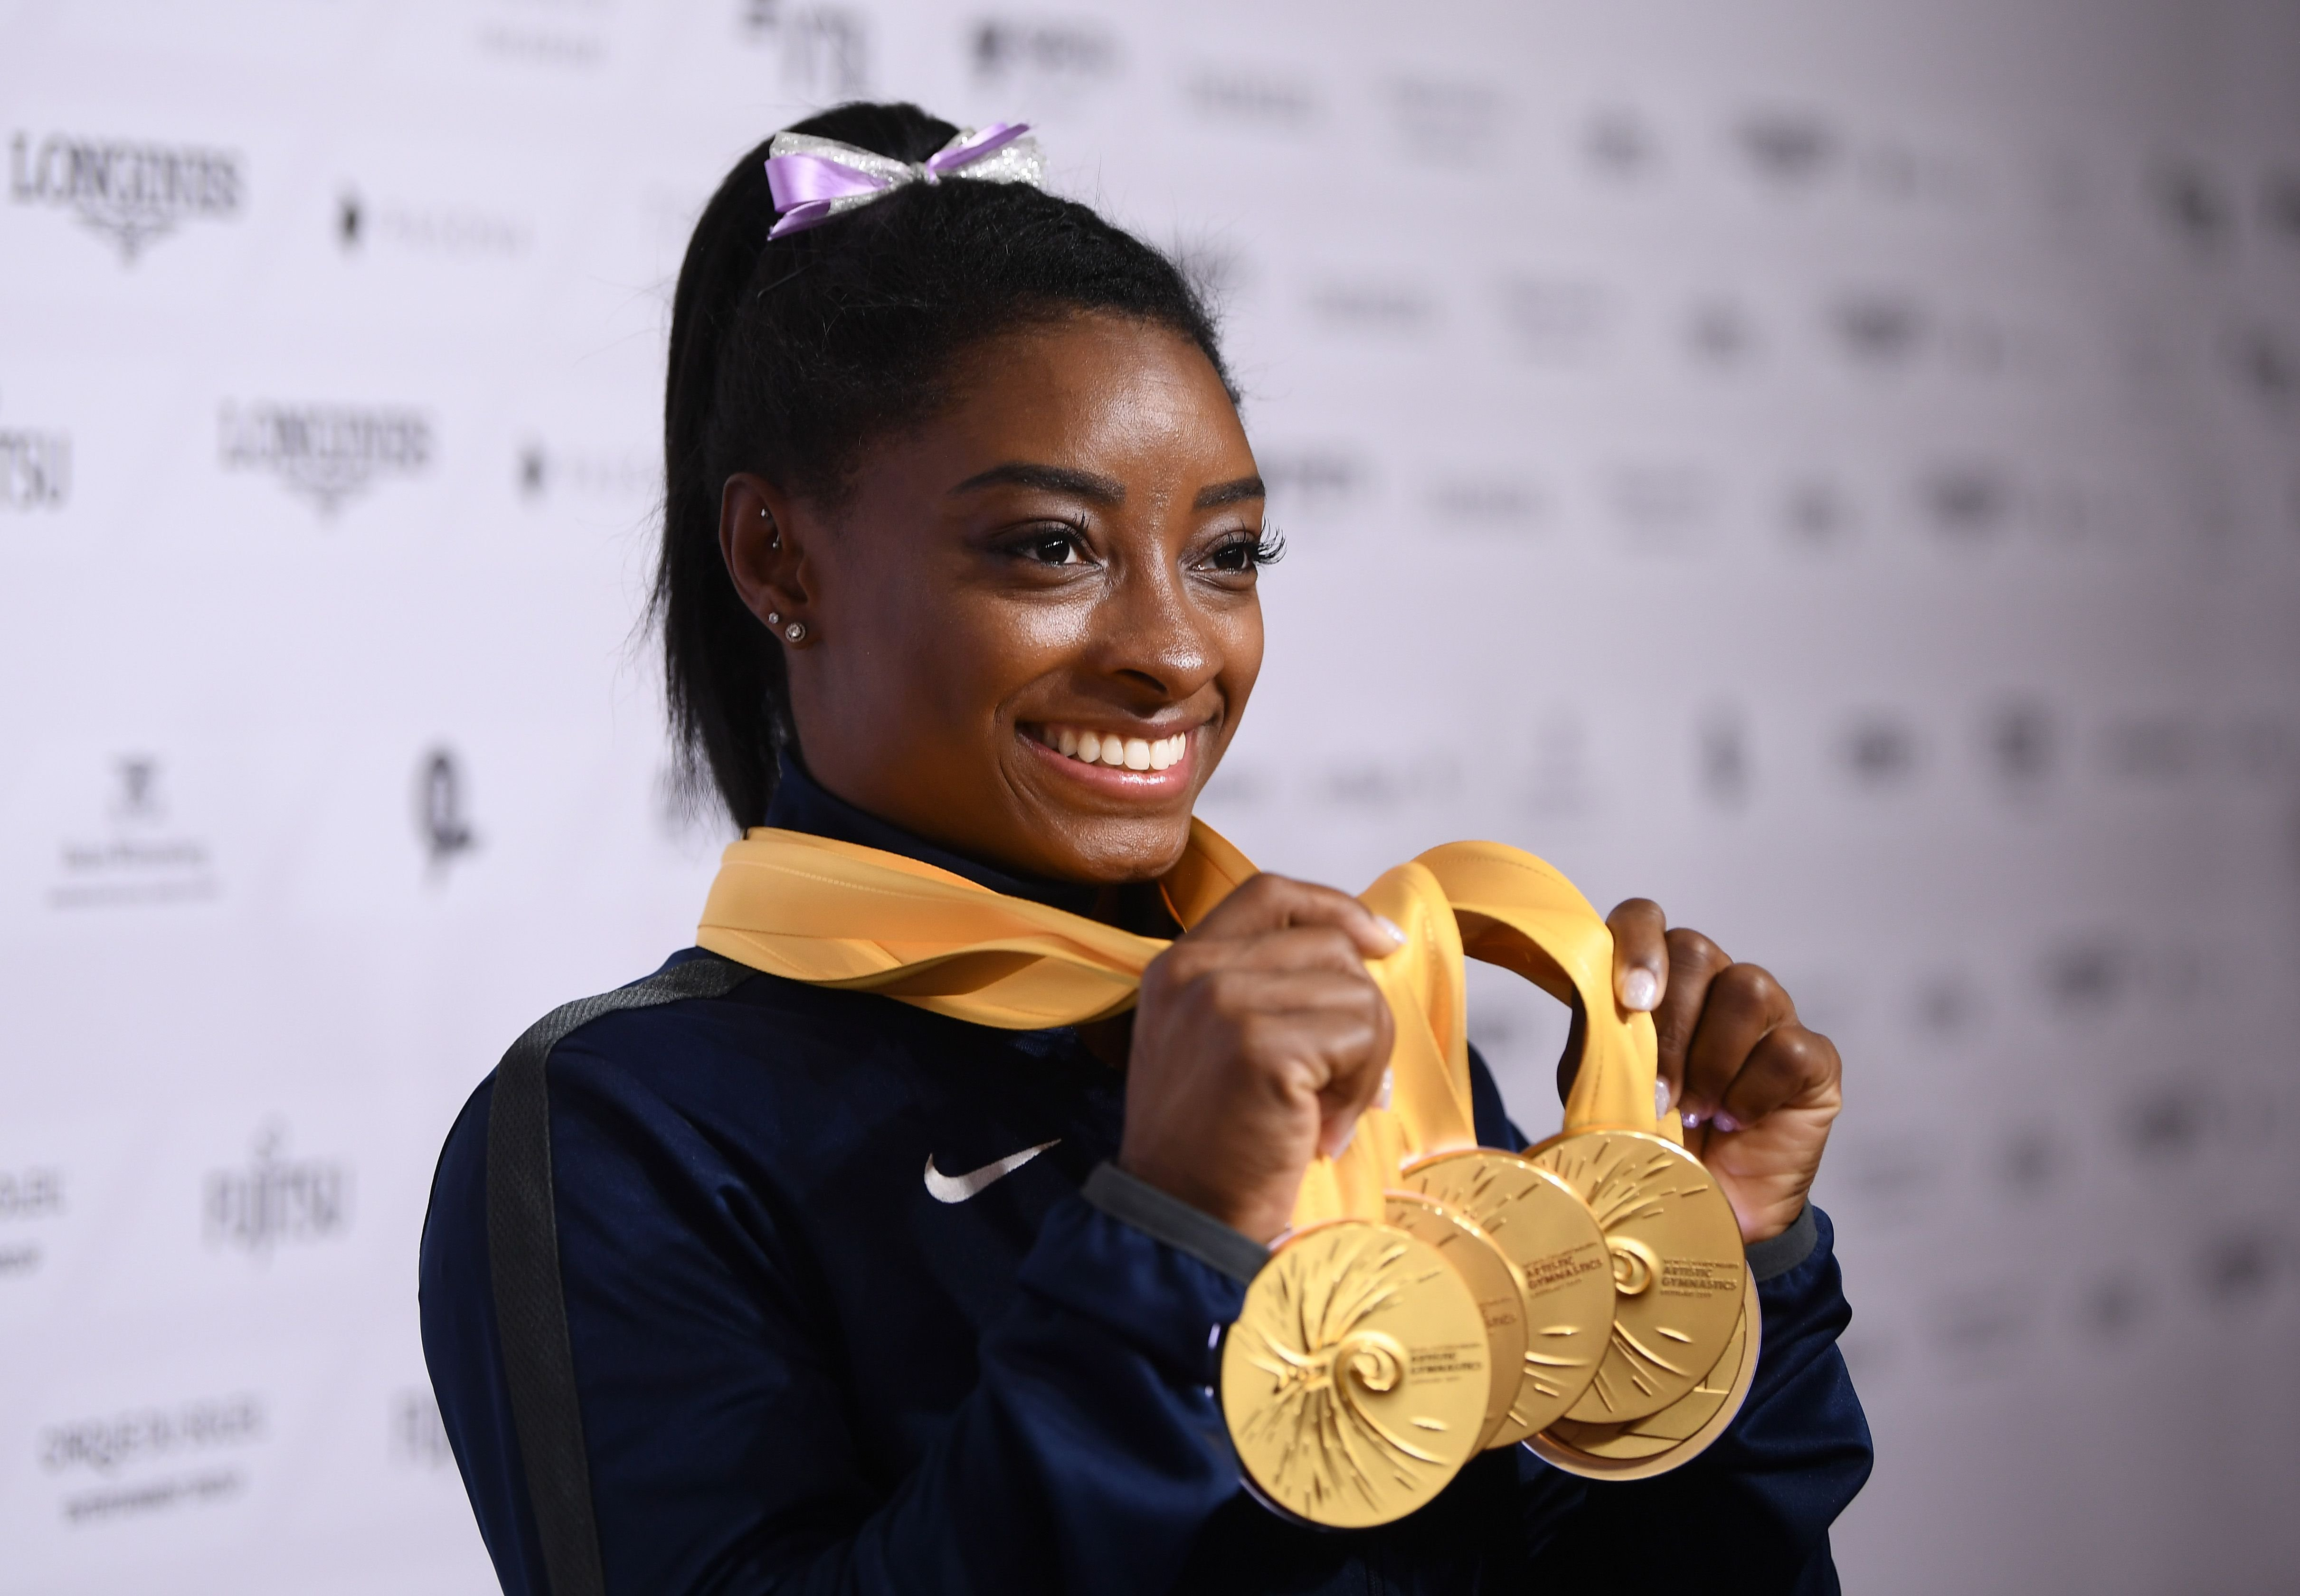 Simone Biles holding up her medals at the FIG Artistic Gymnastics World Championships on October 13, 2019 in Germany. | Photo: Getty Images